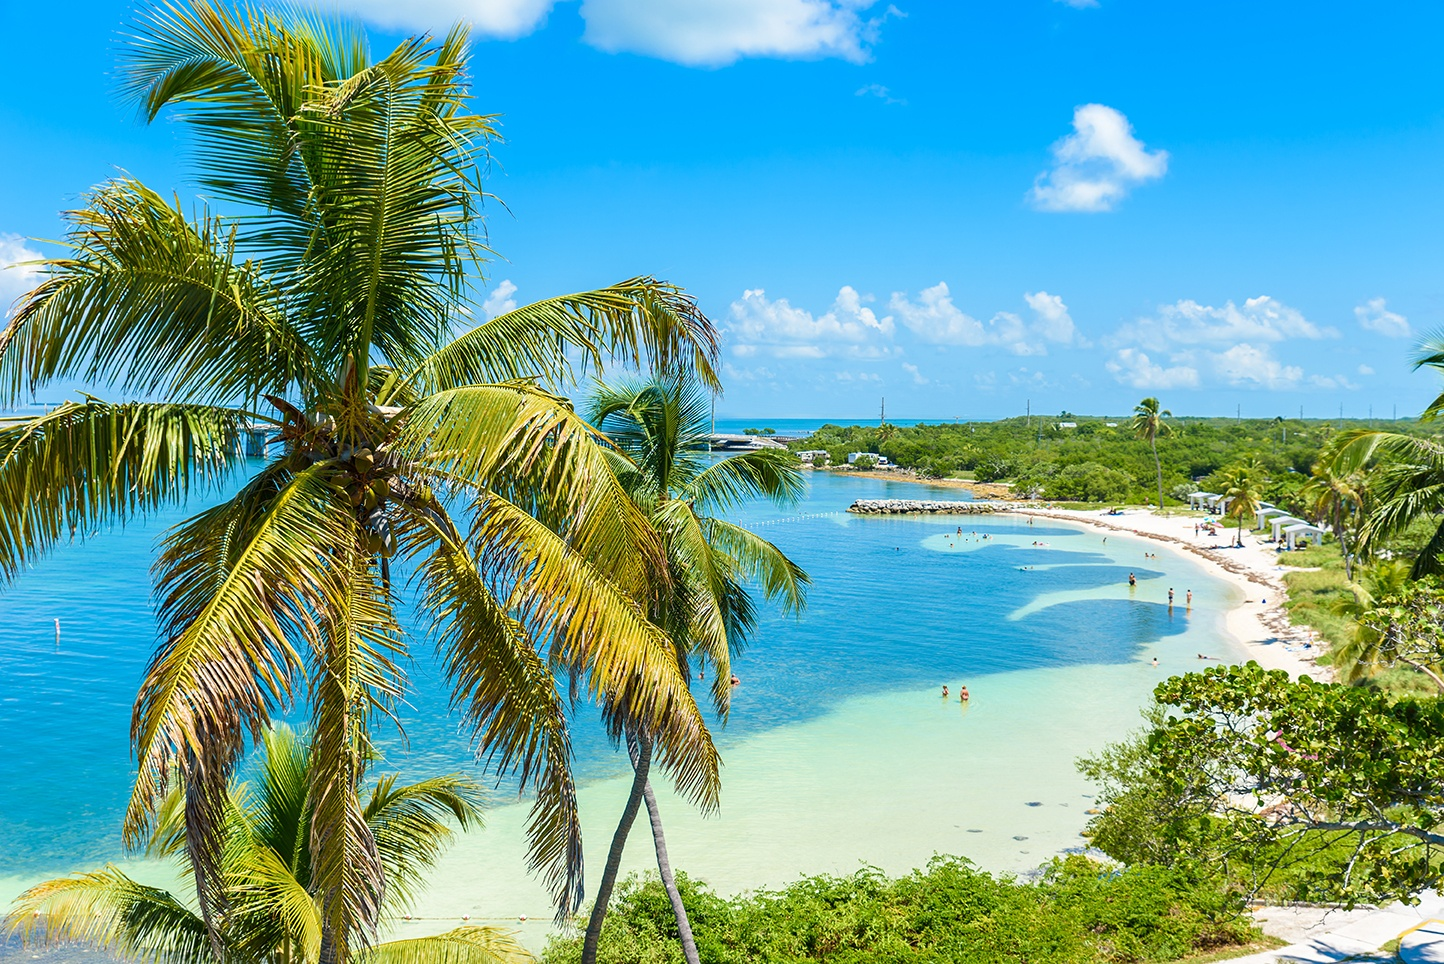 The Florida Keys are tropical islands with famous destinations like Key West